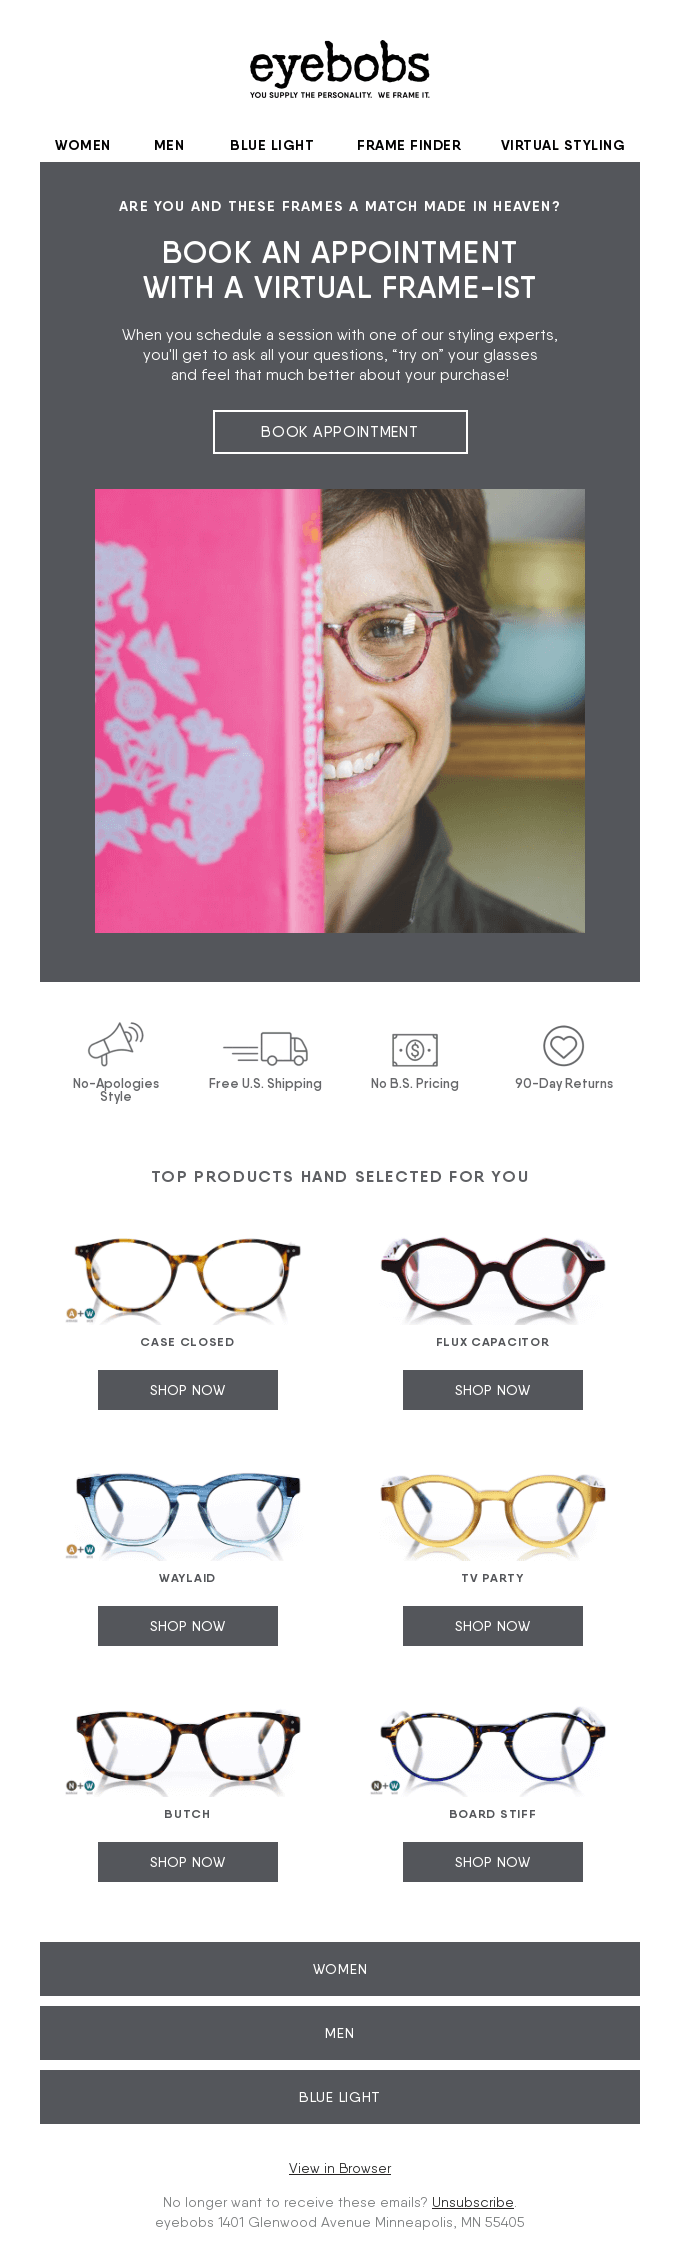 Our Virtual Frame-ists = Your Personal Stylist